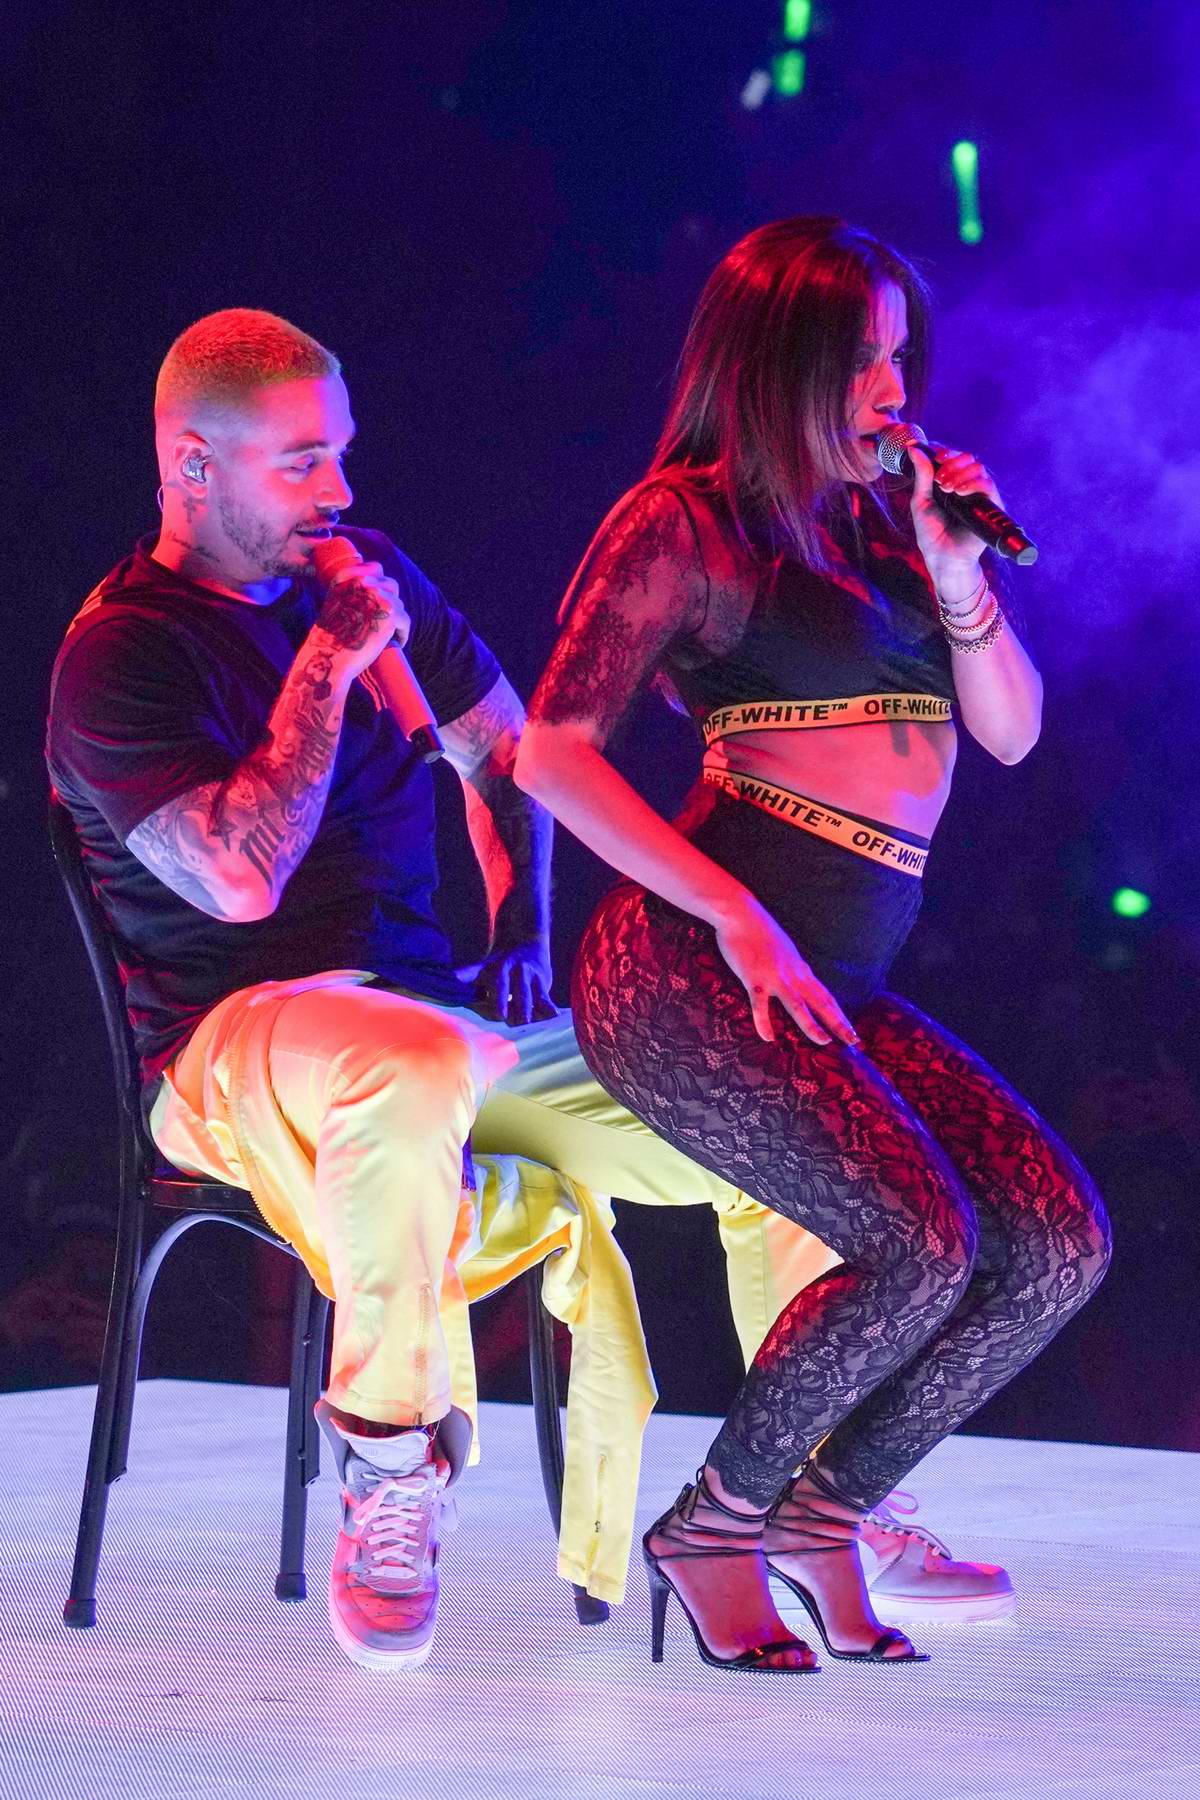 Anitta performs with J Balvin during 'Vibras Tour' at the American Airlines Arena in Miami, Florida